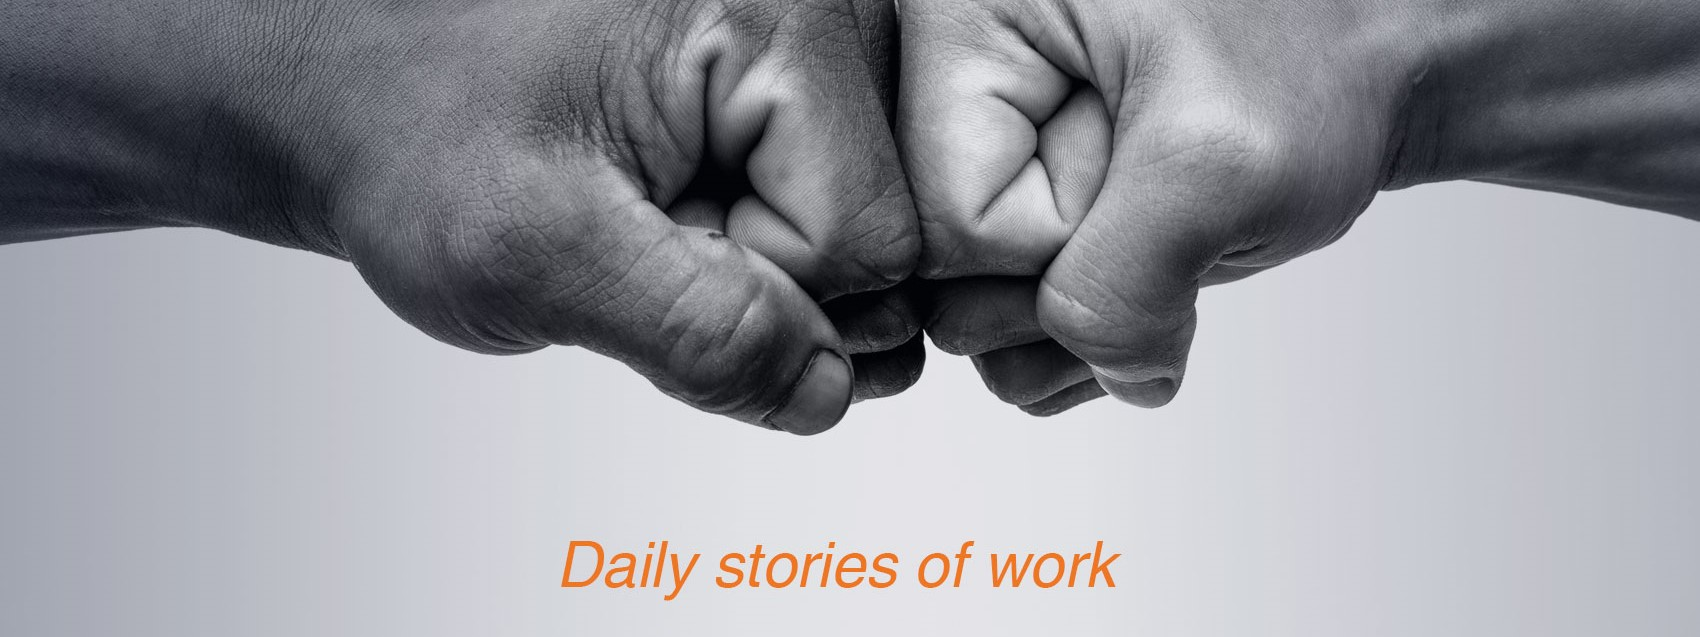 NEWS - #TankTribe – Daily stories of work